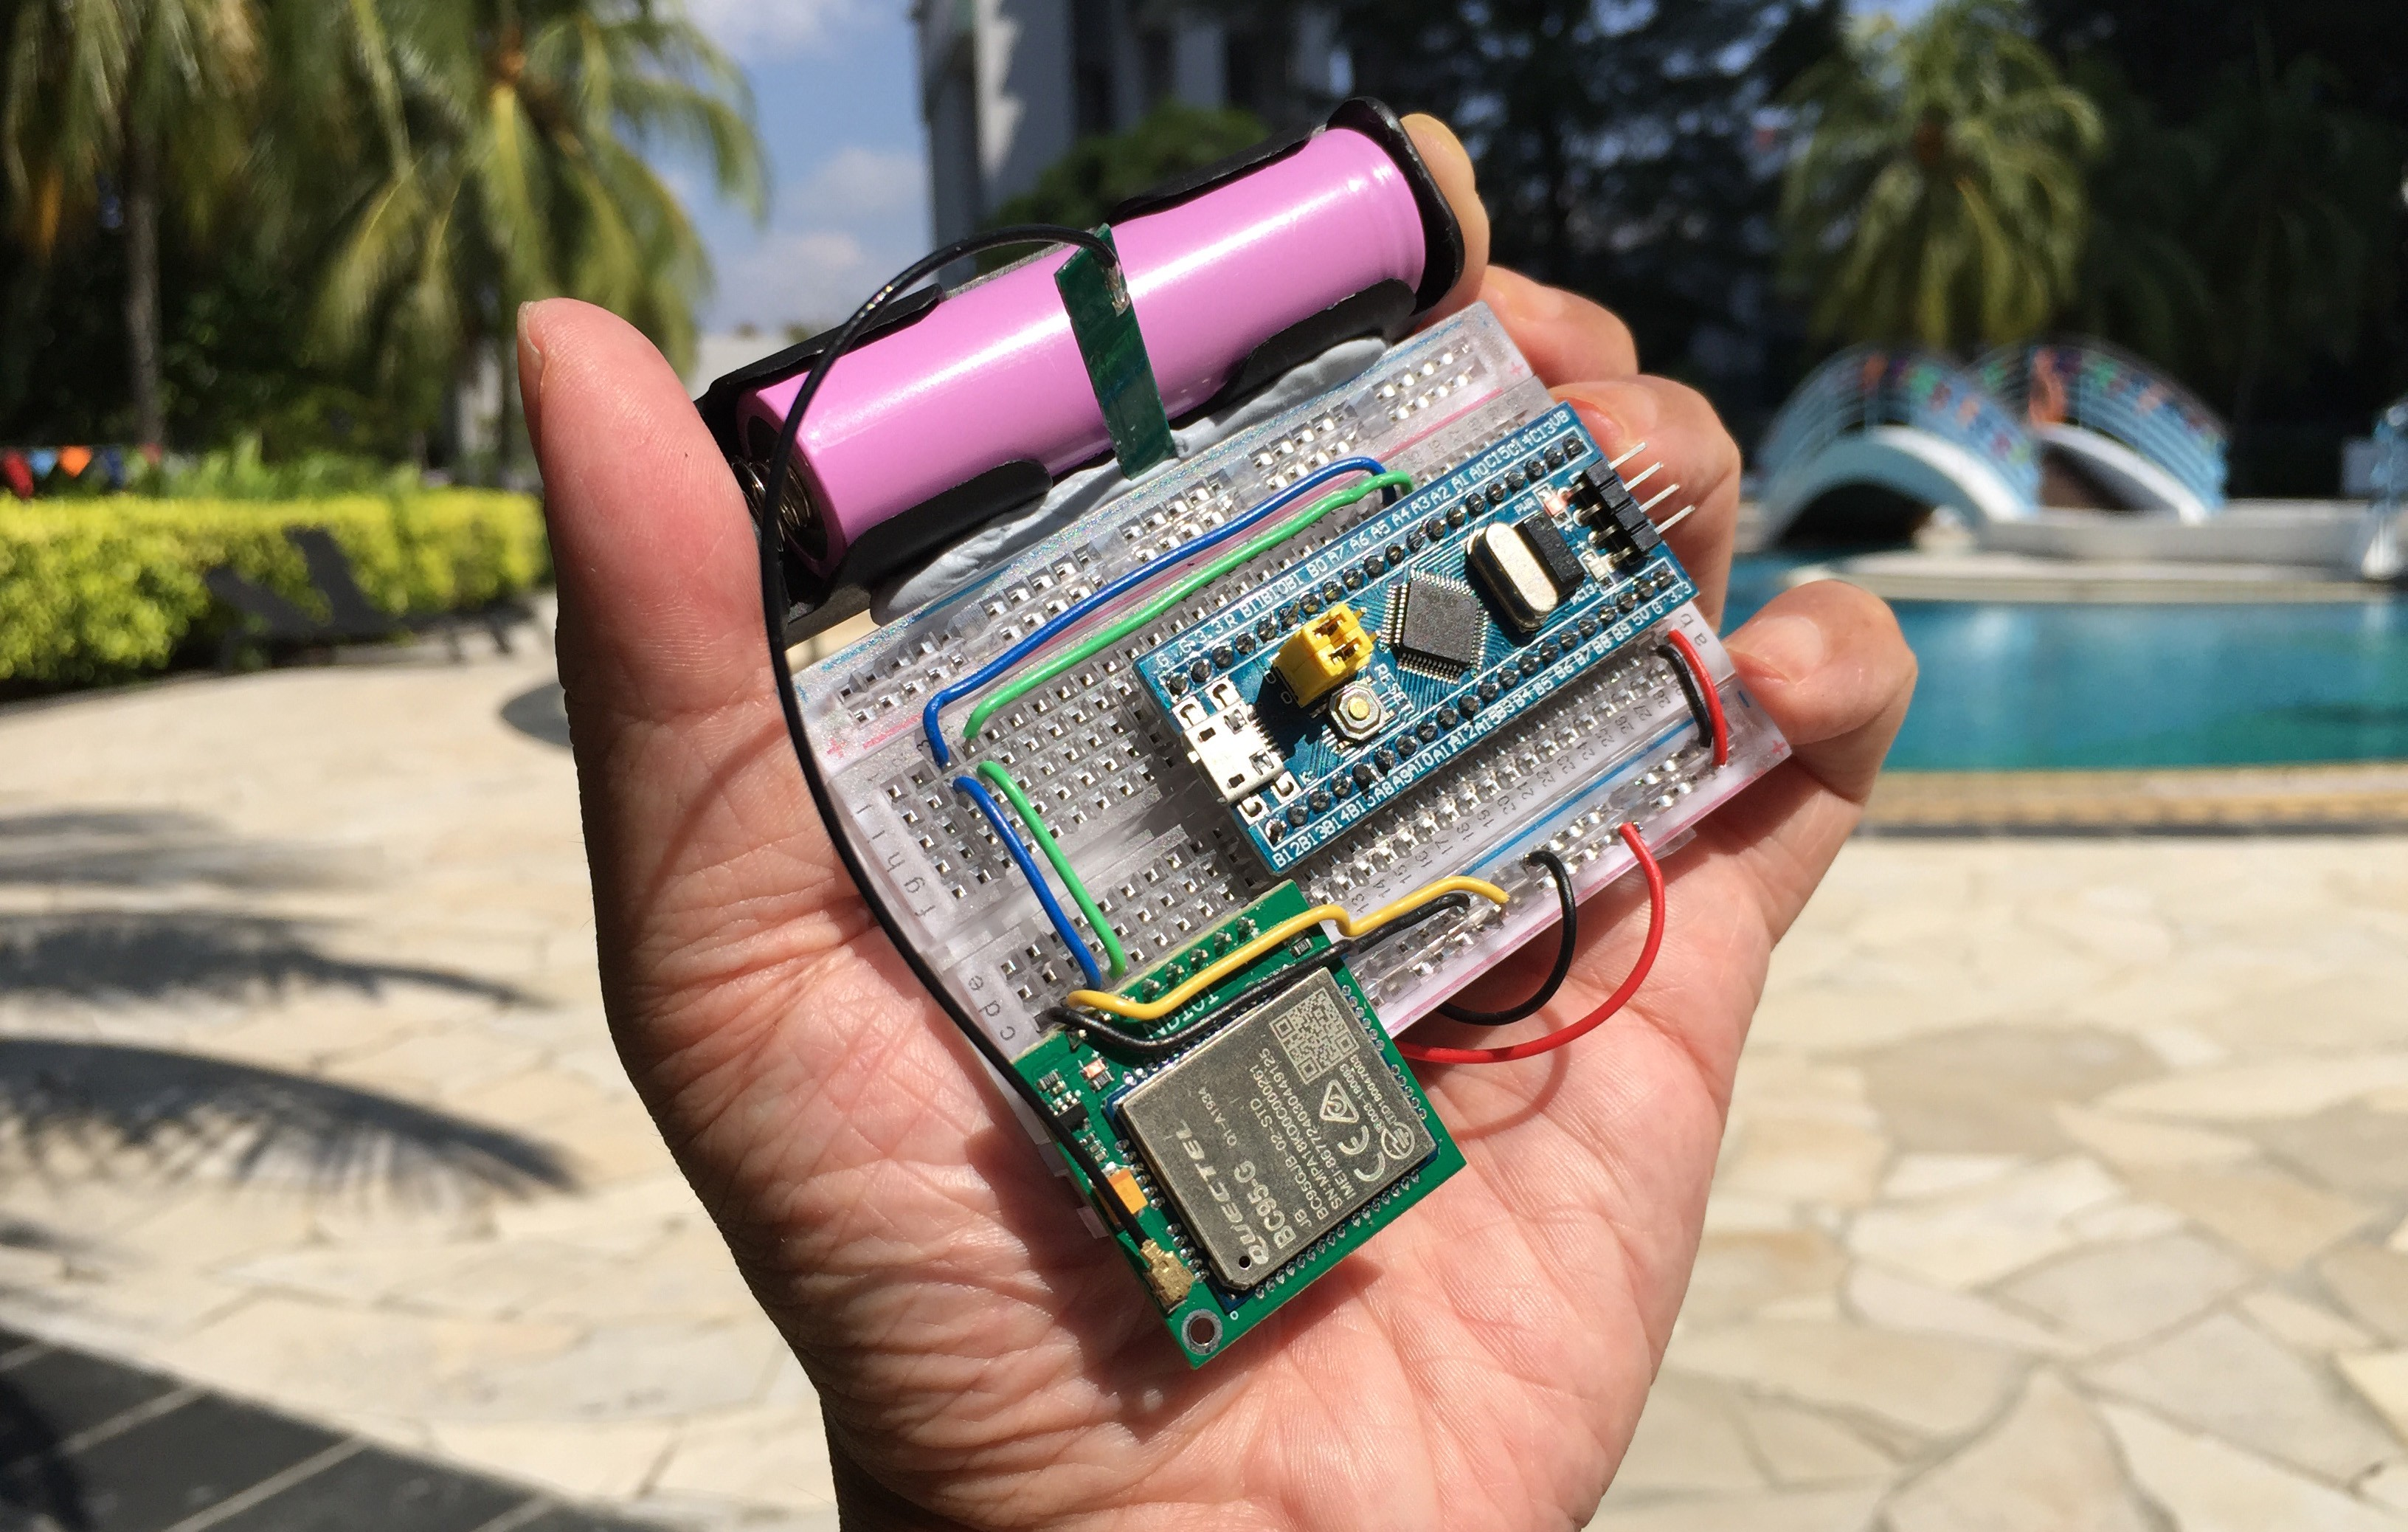 Rust Rocks NB-IoT! STM32 Blue Pill with Quectel BC95-G on